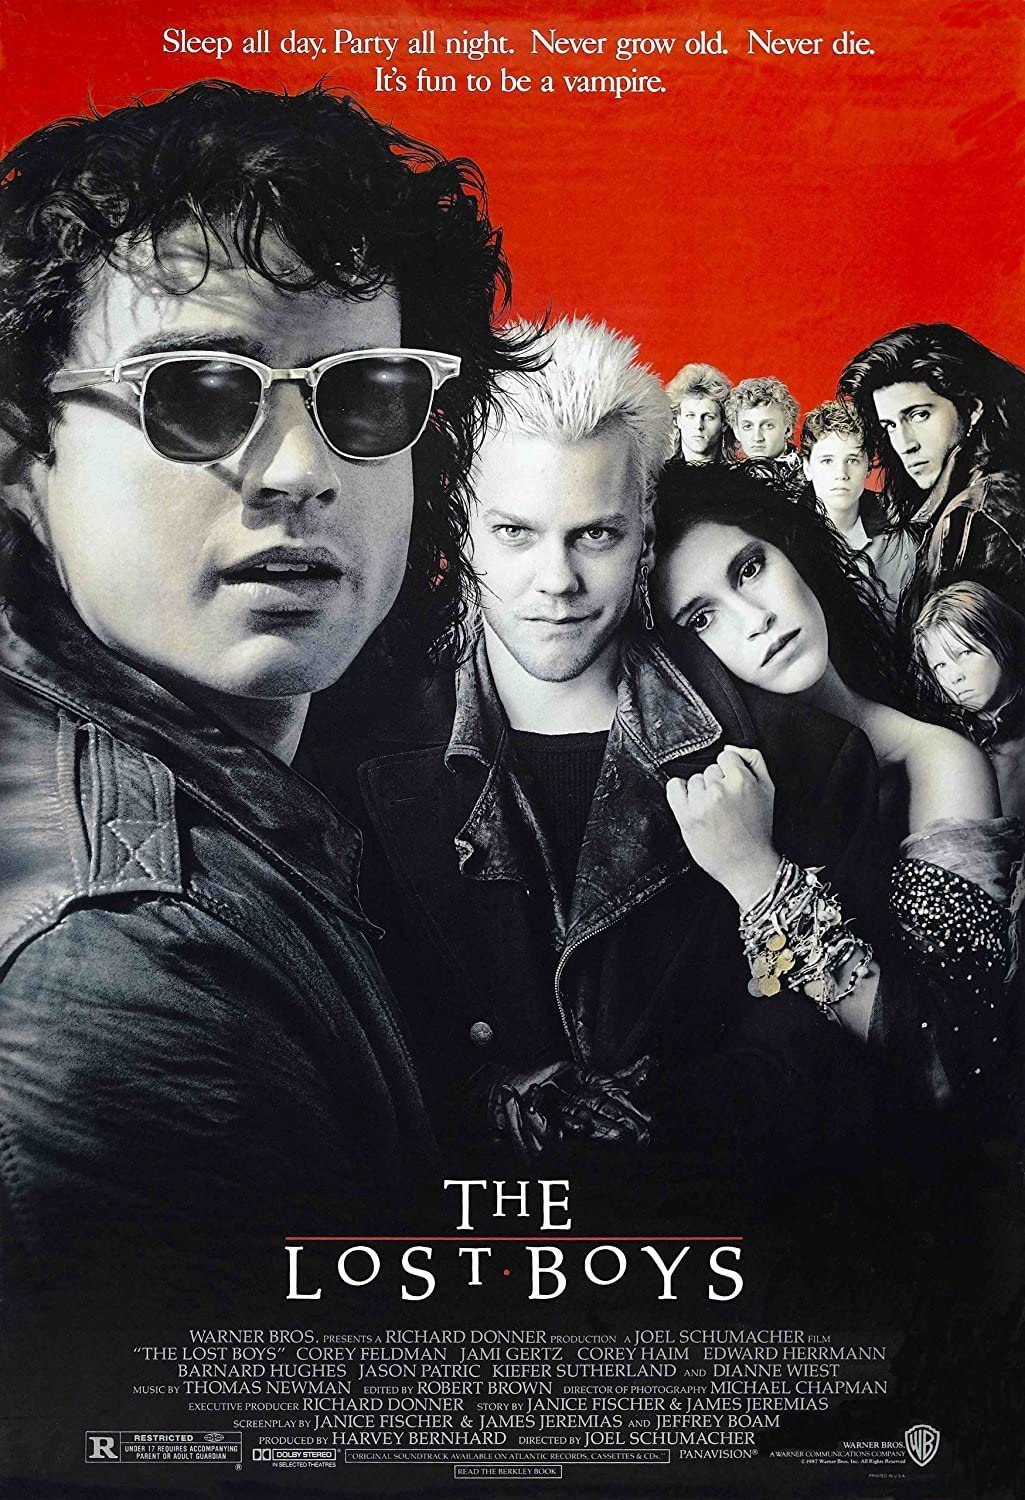 Amazon.com: Poster The Lost Boys (1987) Movie 24x36: Posters & Prints